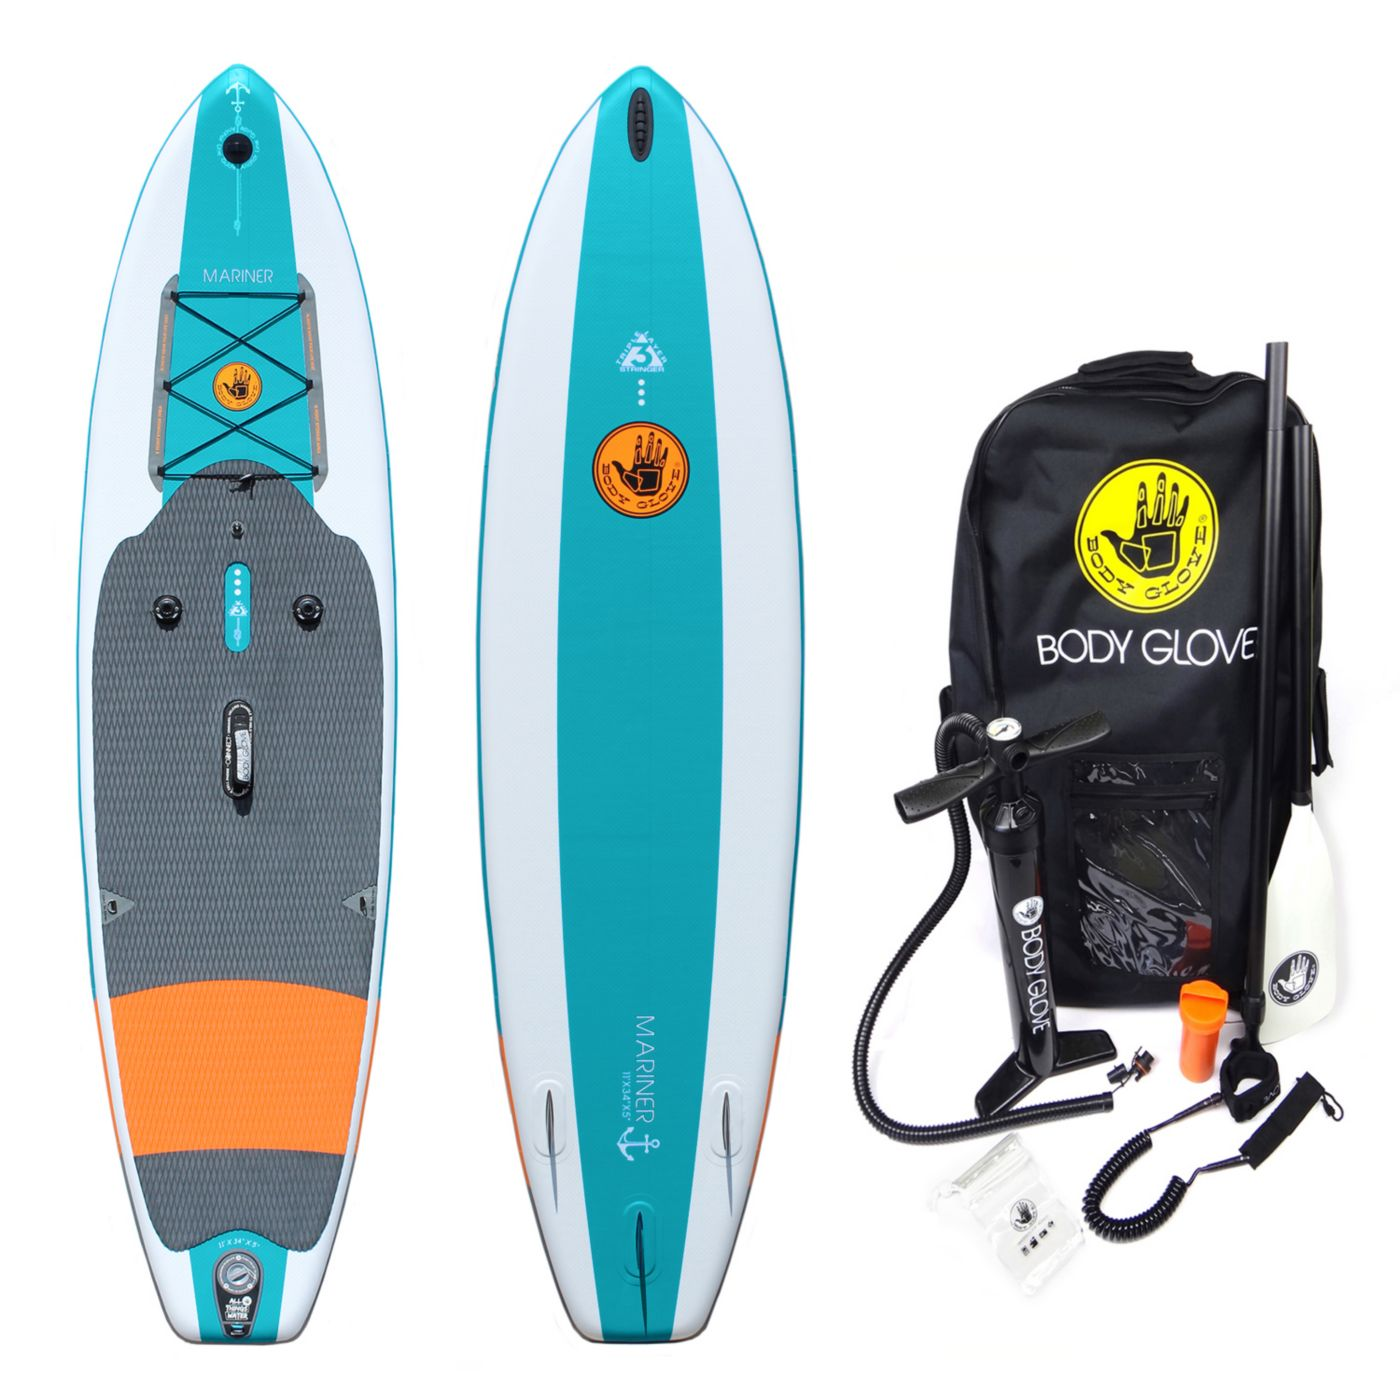 Body Glove Mariner XL Inflatable Stand-Up Paddle Board